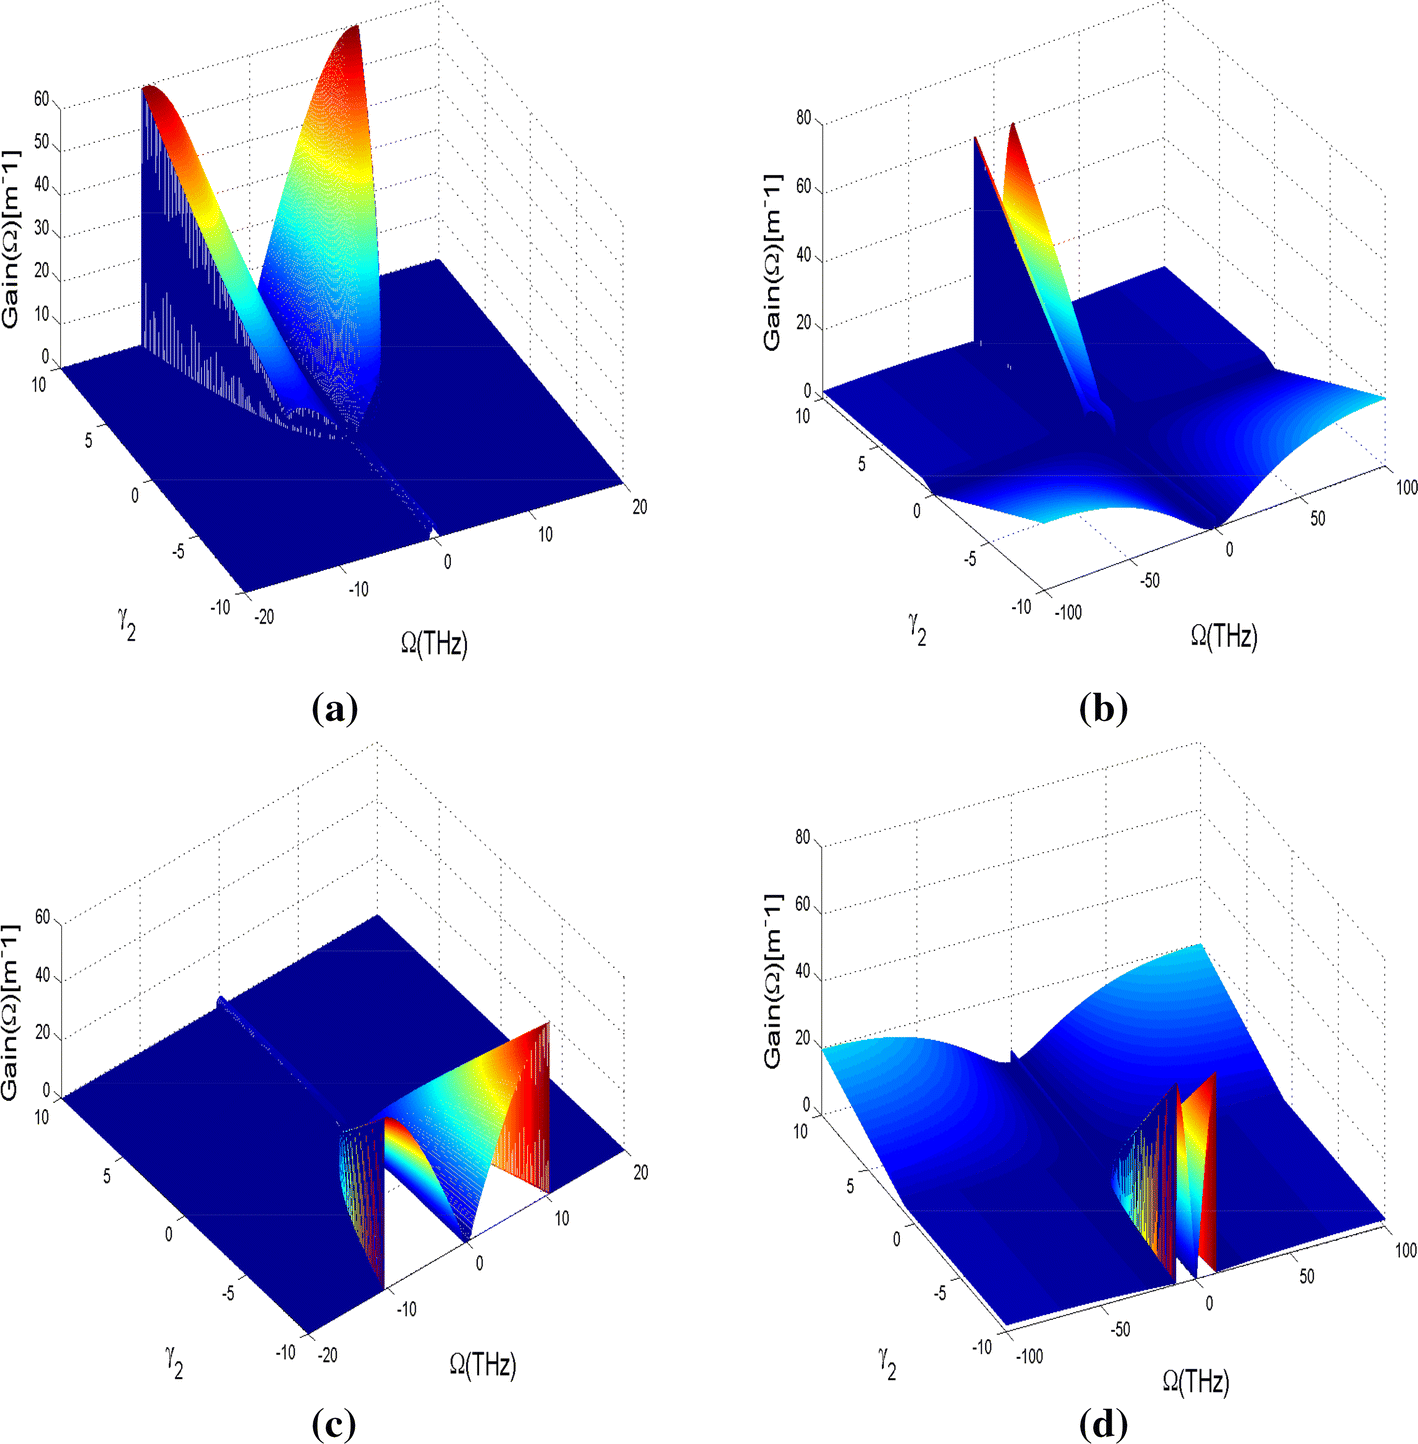 Modulational instability in nonlinear oppositely directed